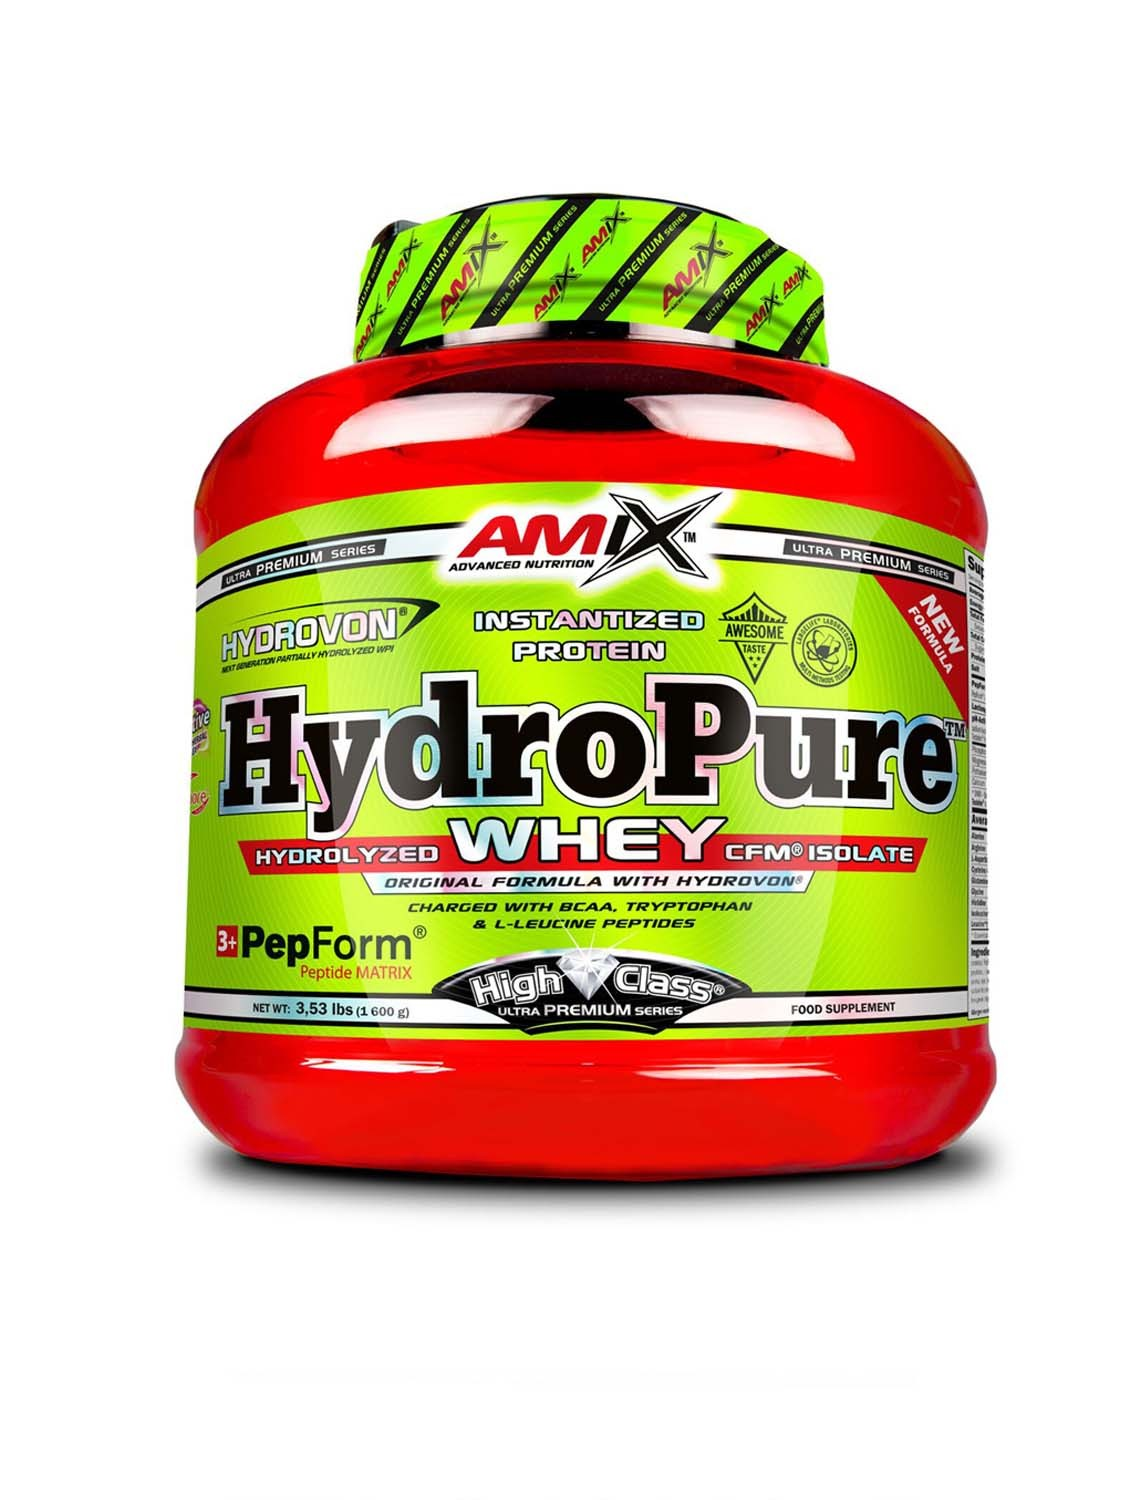 Amix HydroPure Whey Protein, peanut butter cookies, 1600g